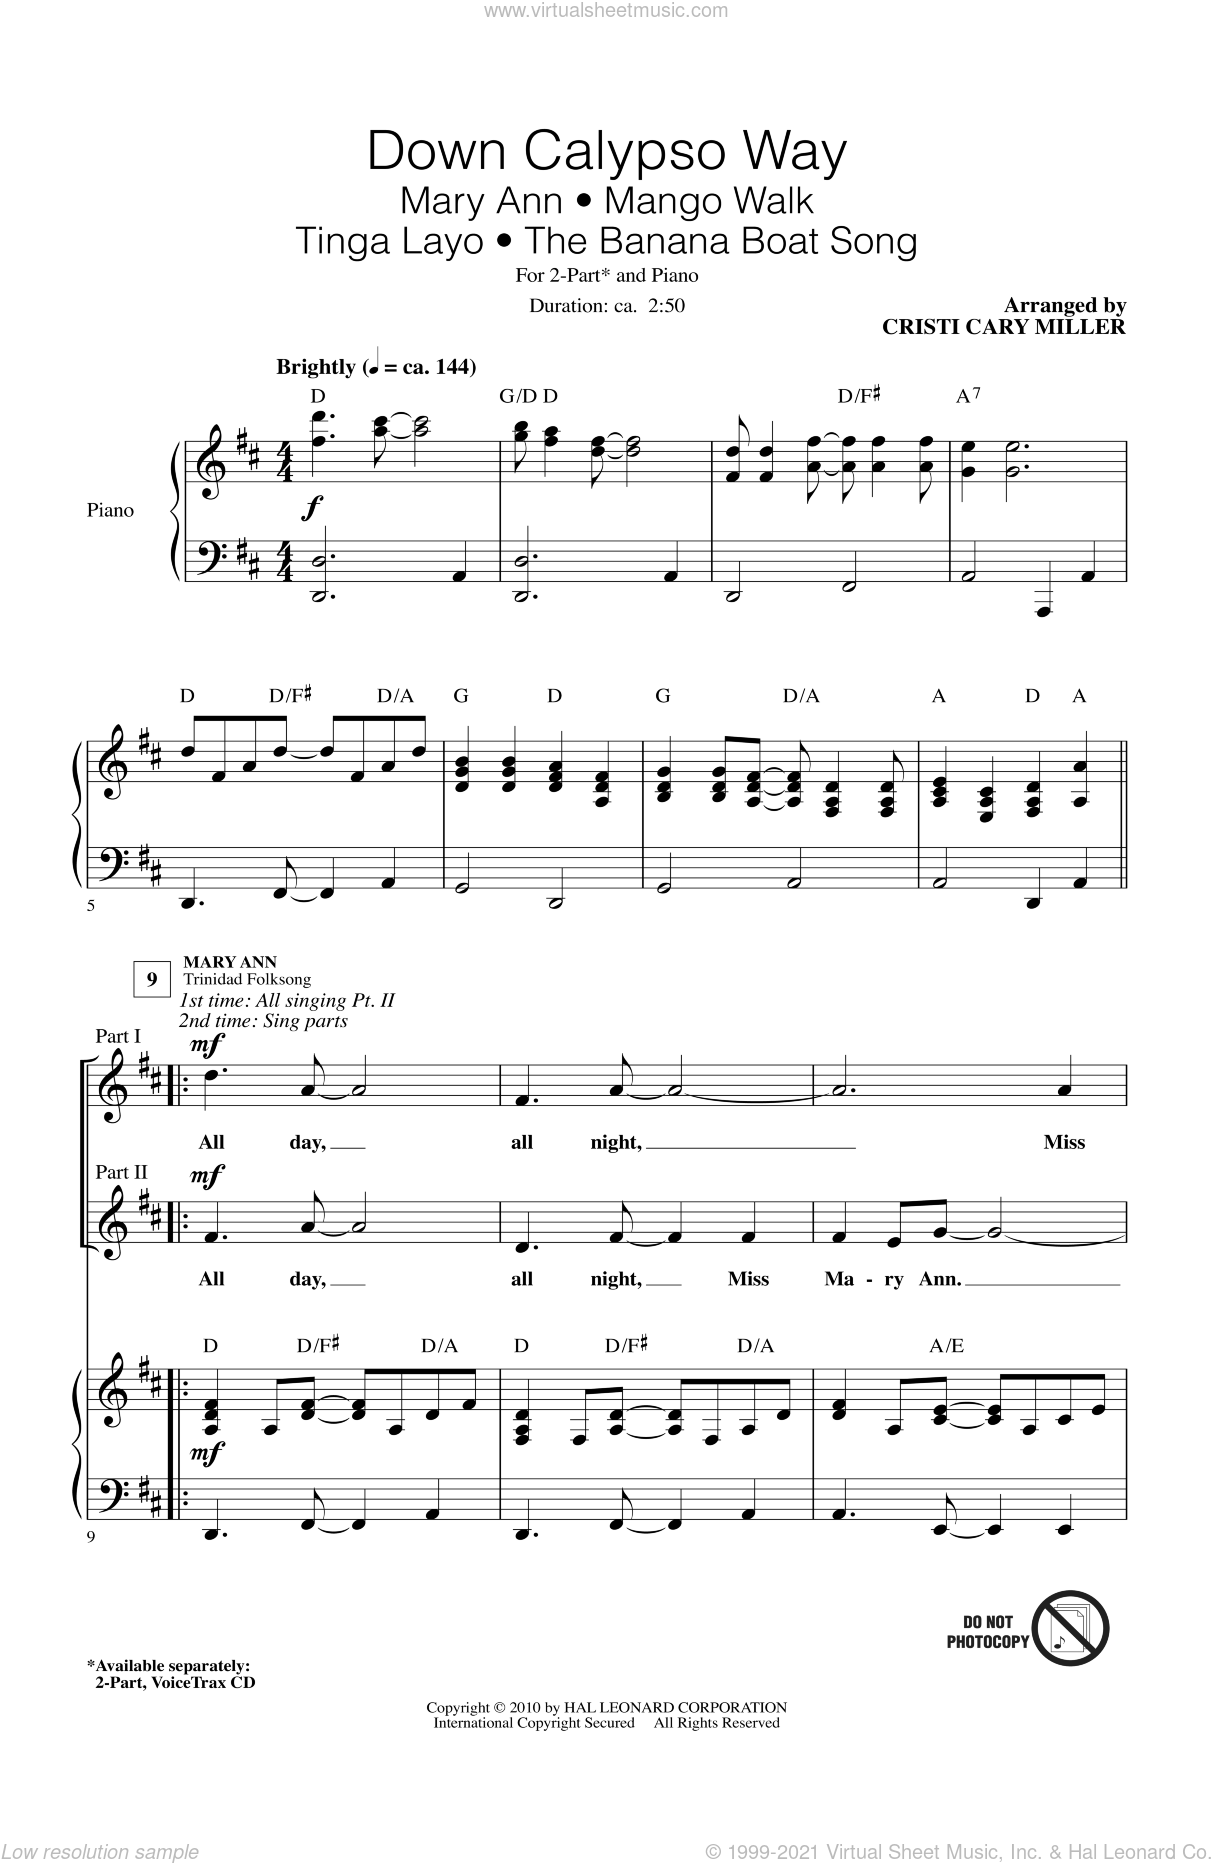 Down Calypso Way sheet music for choir and piano (duets) by Cristi Cary Miller